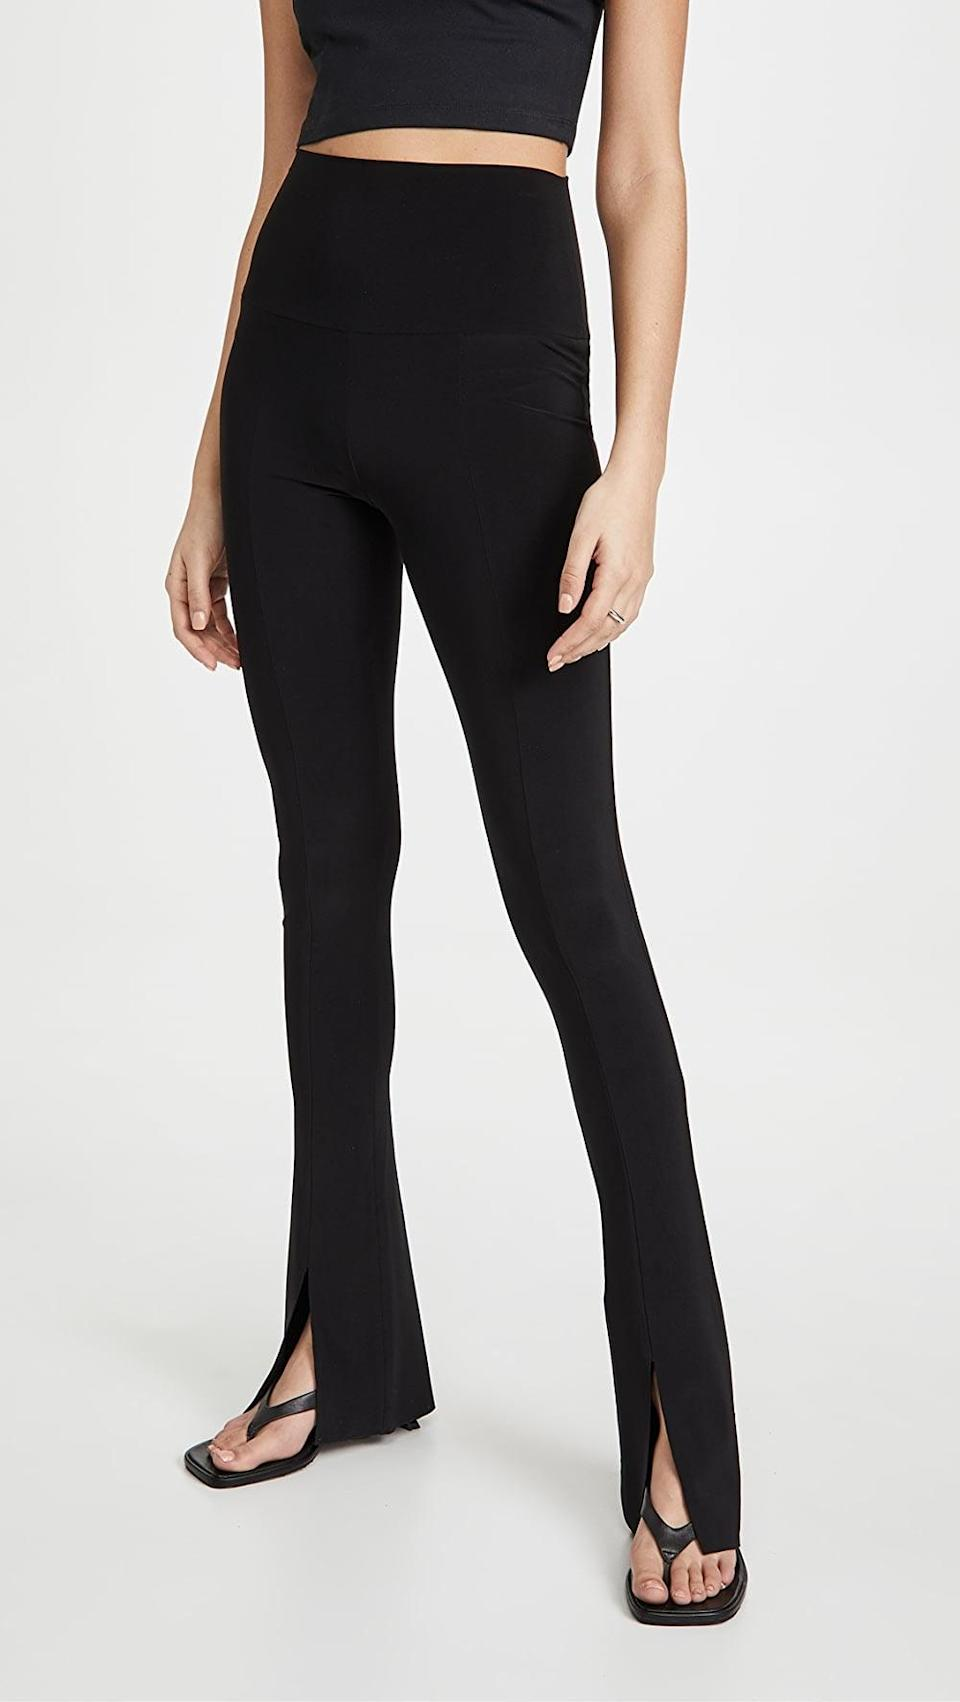 <p>These <span>Norma Kamali Spat Leggings</span> ($115) totally double as chic pants you can wear to brunch or dinner.</p>